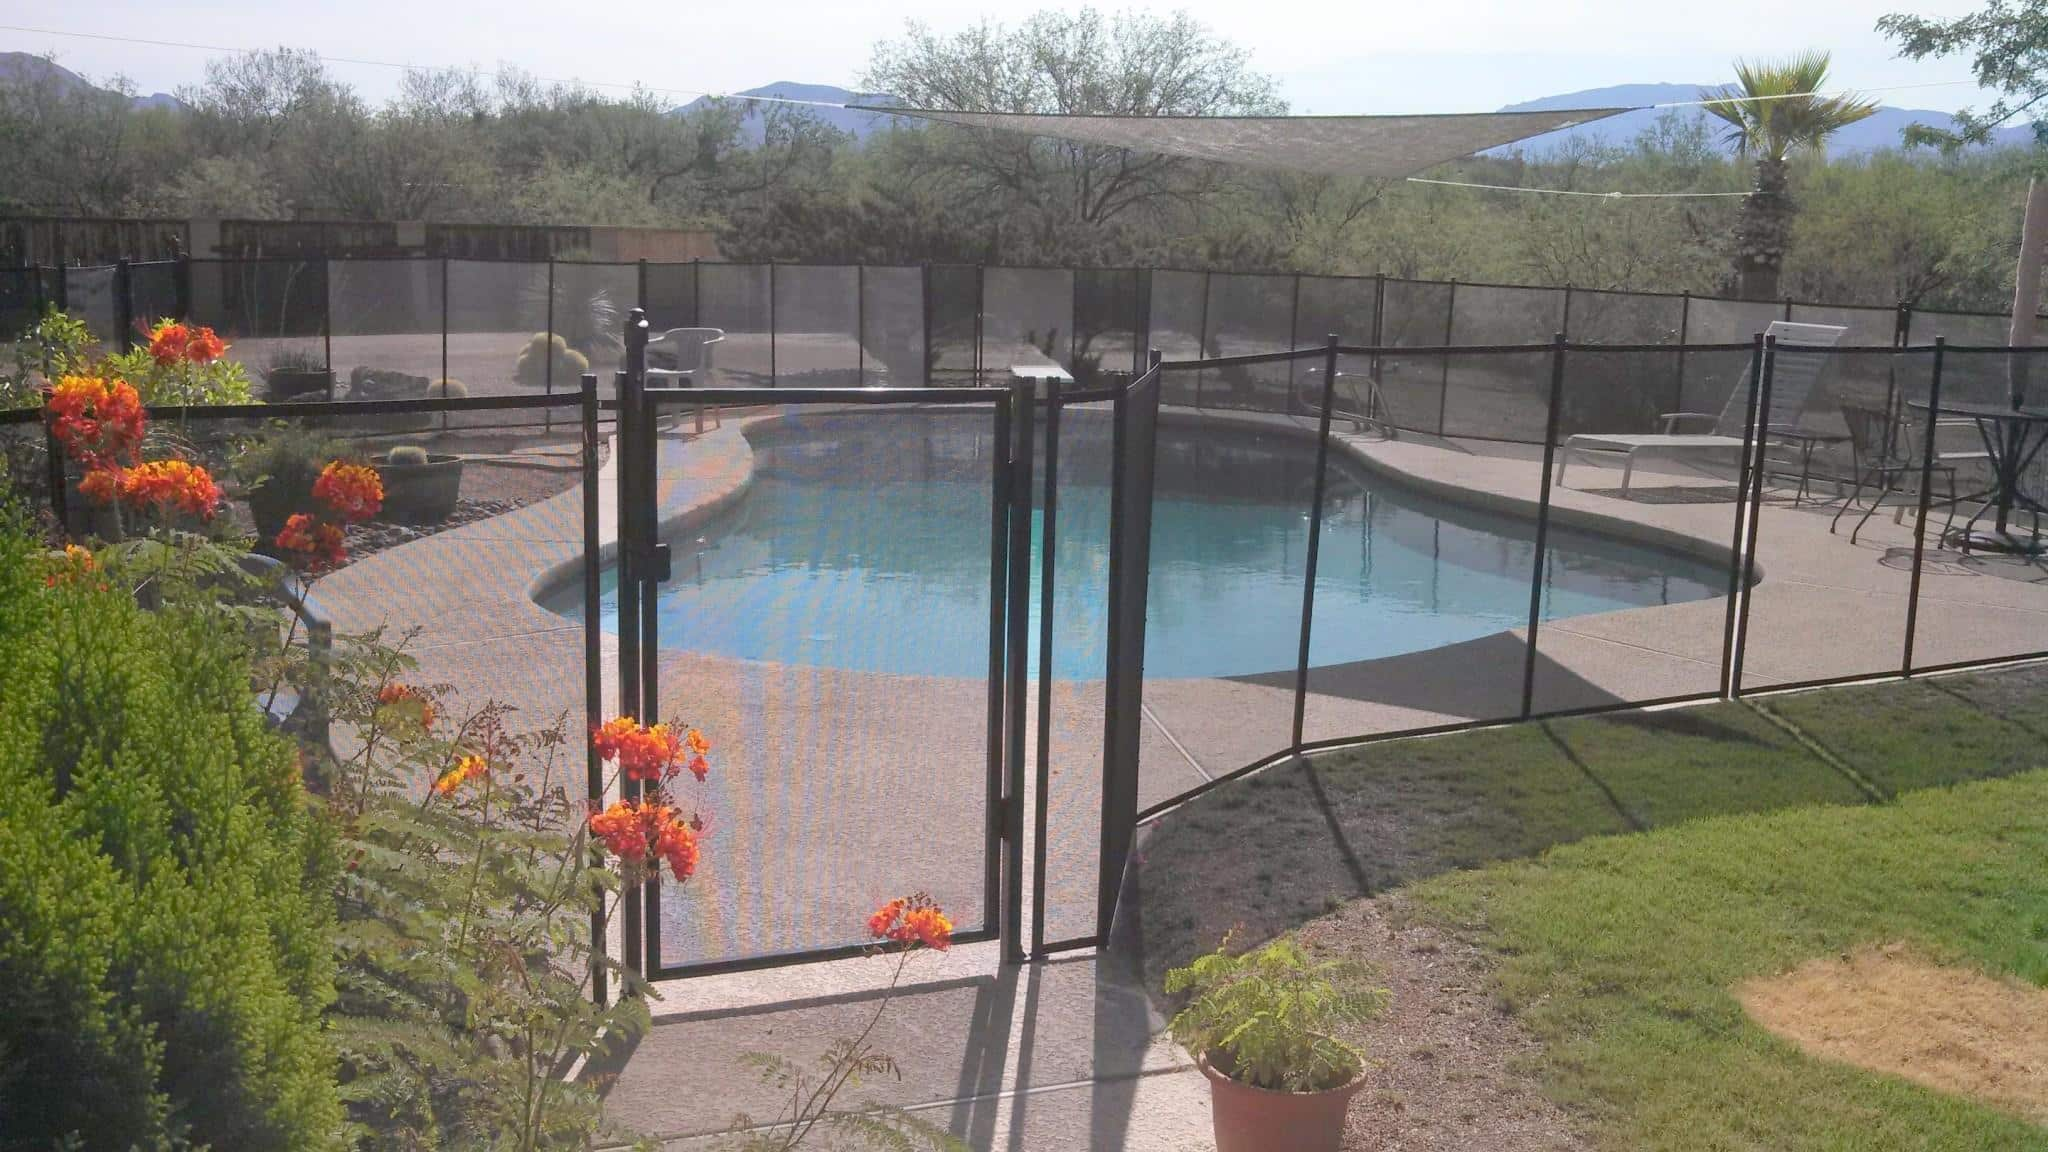 Gate of a curvy mesh pool fence - note the presence of a shade over the pool RM117